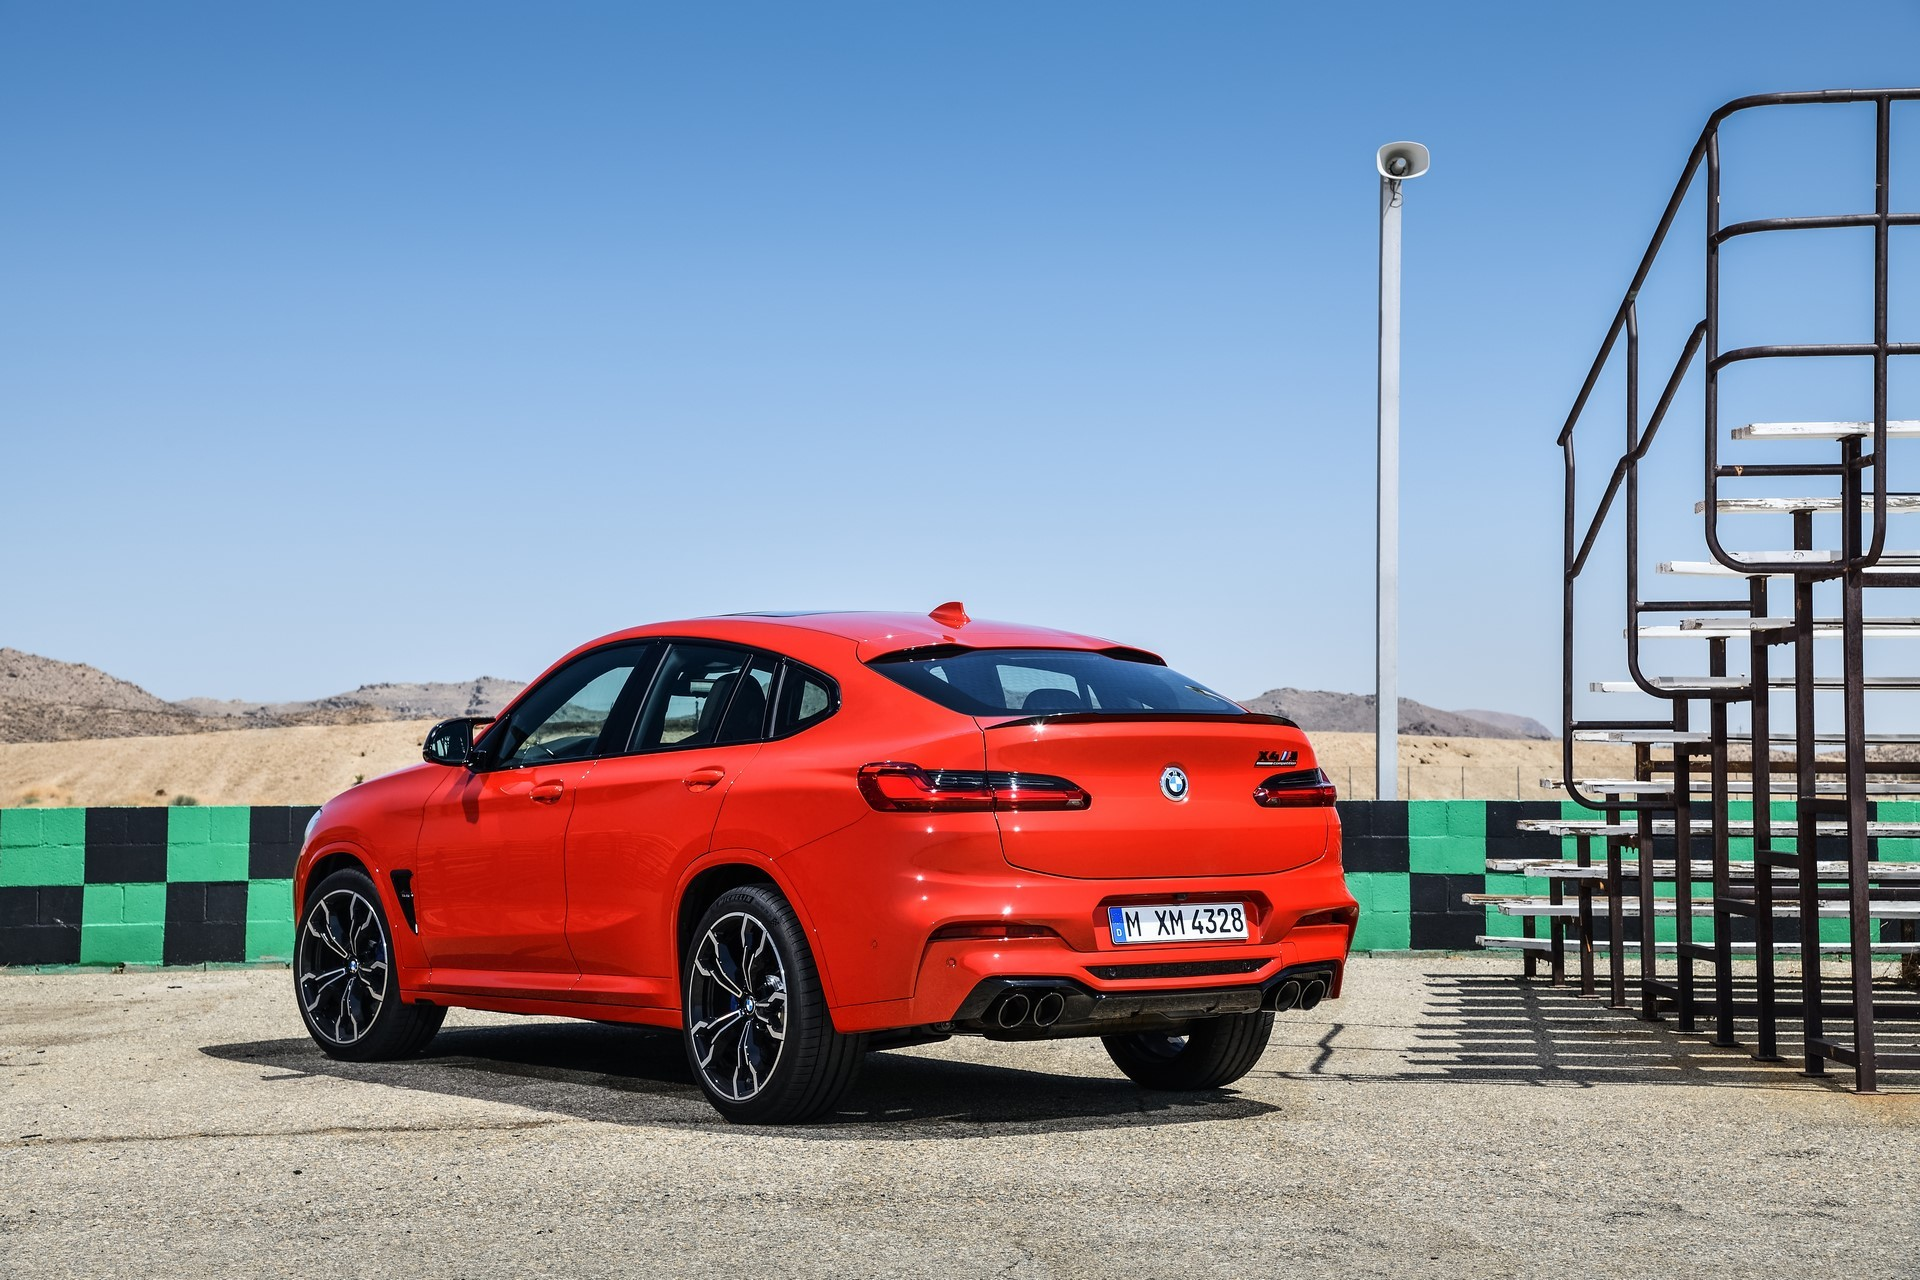 BMW X3 M and X4 M 2019 (72)